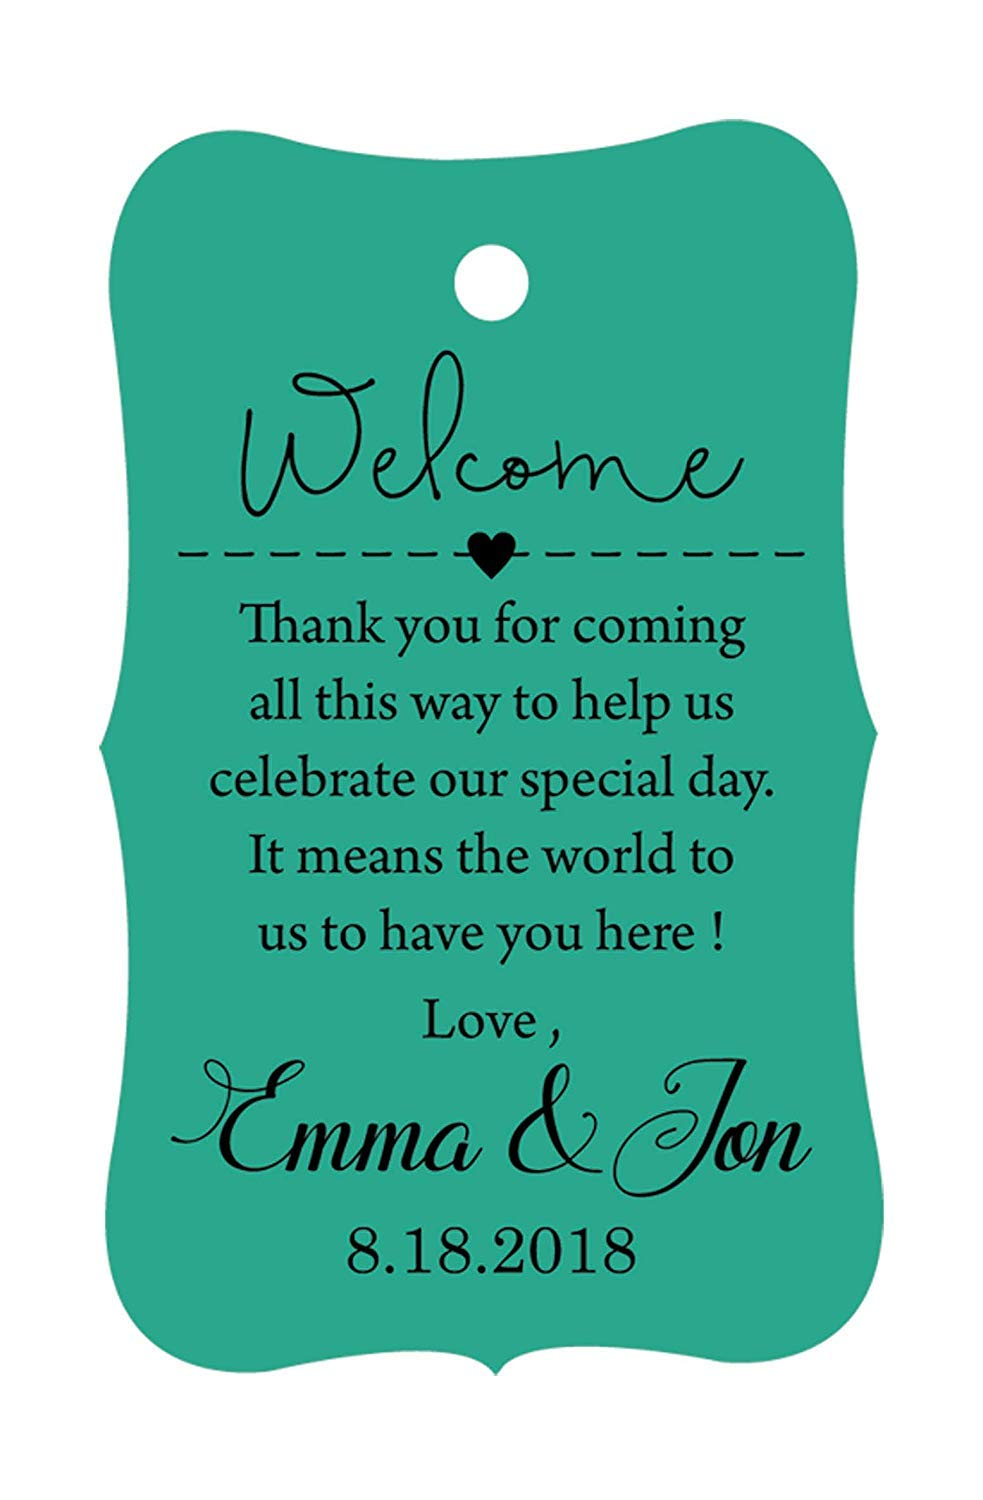 100 PCS Wedding Welcome Personalized Wedding Favor Gift Paper Tags Custom Made Thank you Hang Tags